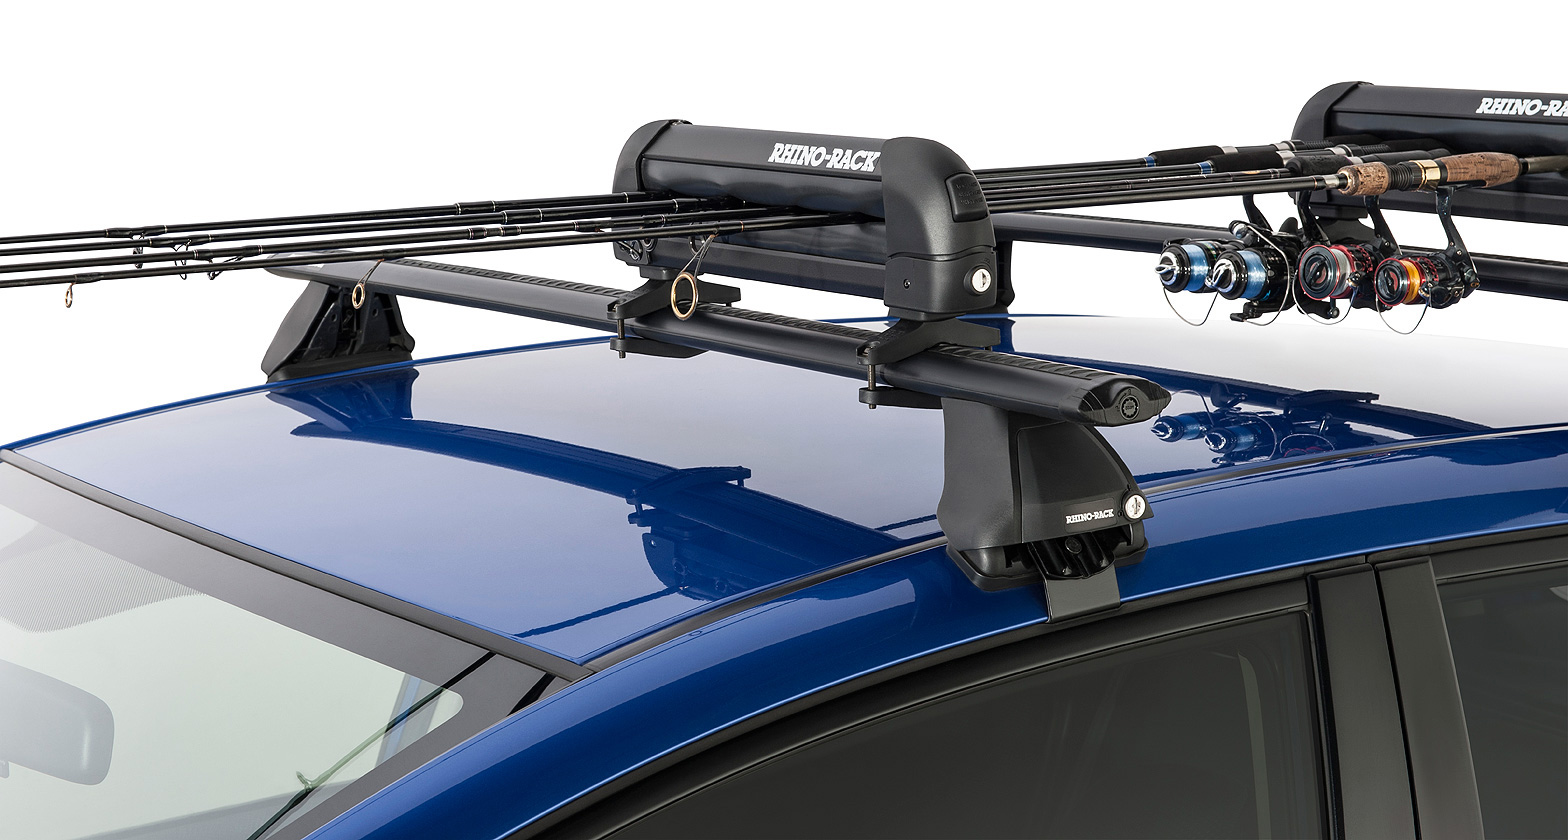 ski carrier and fishing rod holder holds 3 skis or 2